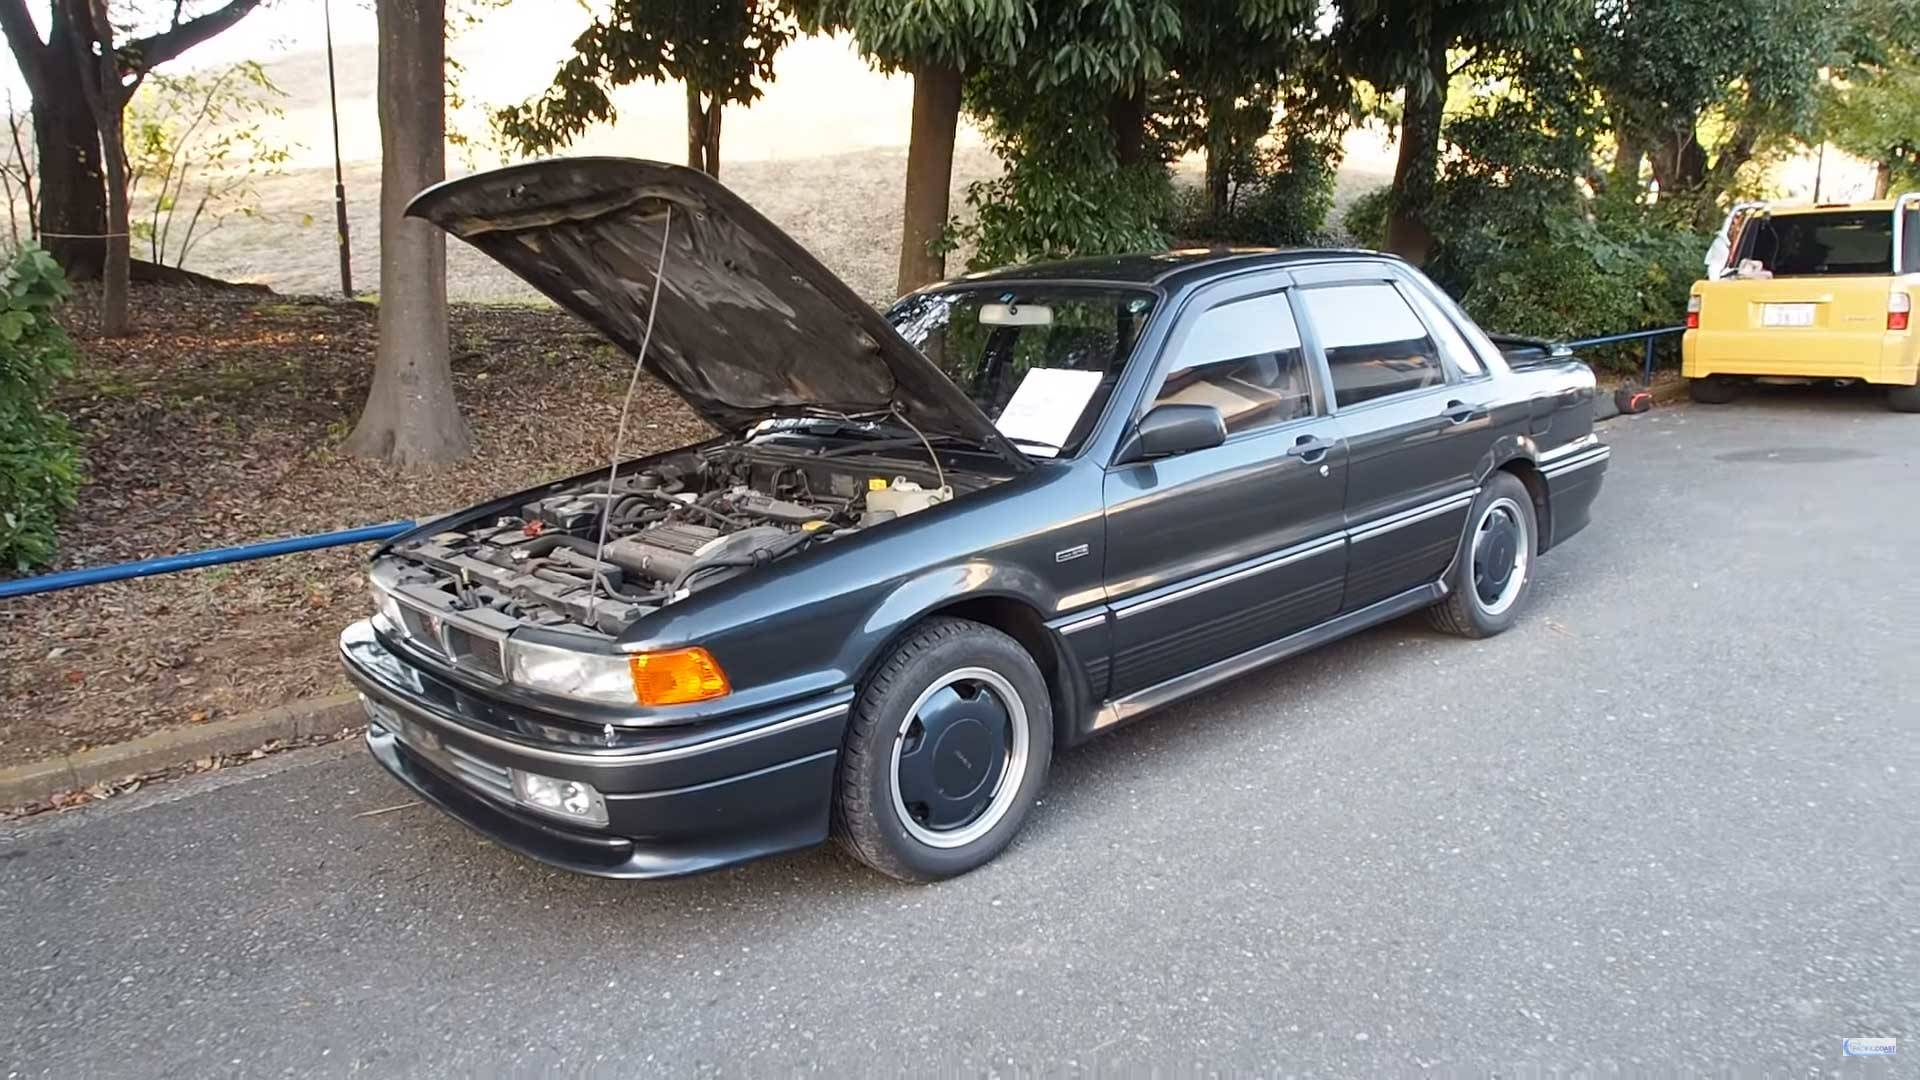 This Rare Amg Tuned Mitsubishi Galant Is A 1990s Time Machine